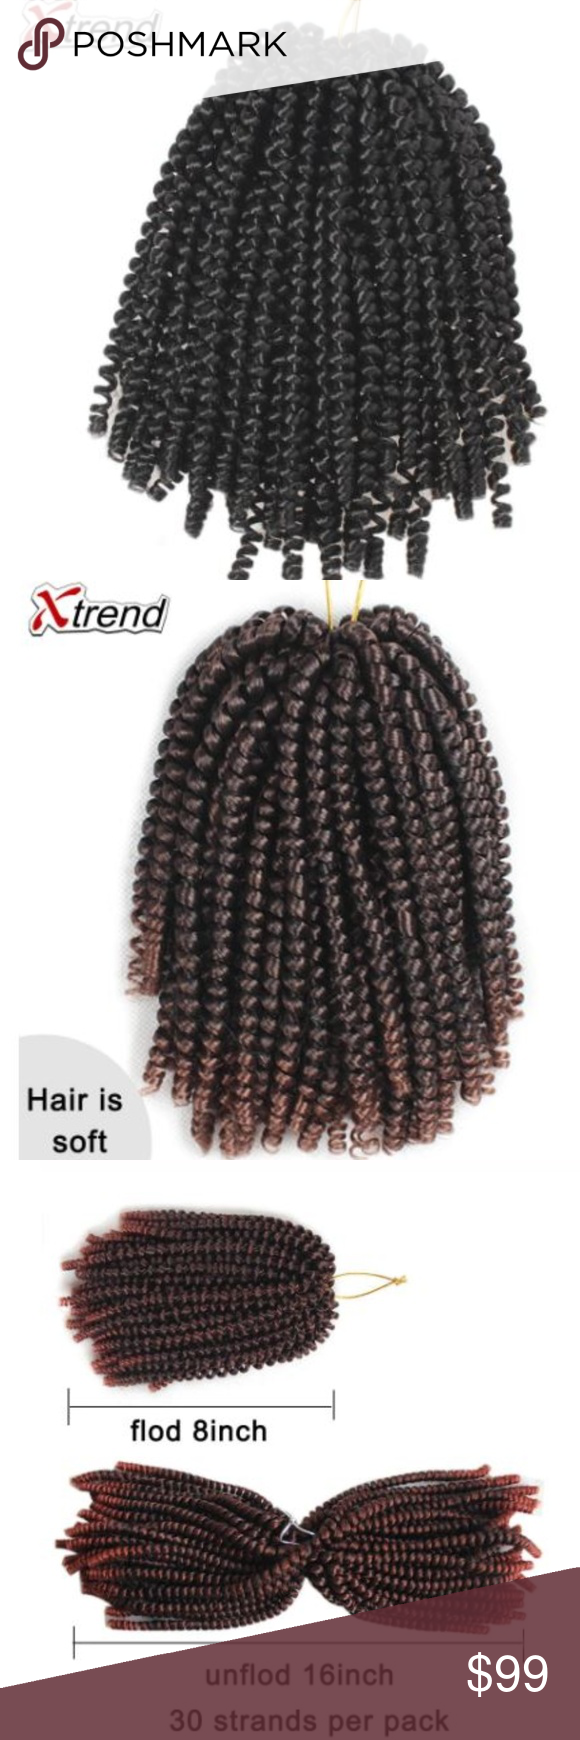 Synthetic Spring Twist Hair Extension Sz 8inches Xtrend Spring Twist Hair Extension Meche Crochet Braid Tresse Crotchet Braids kinky Passion Twist Curly Synthetic 1 to 10 Pcs  30 strands per pc, fold is 8 inch(20cm), unfold is 16 inch(40cm) Accessories Hair Accessories #passiontwistshairstyle